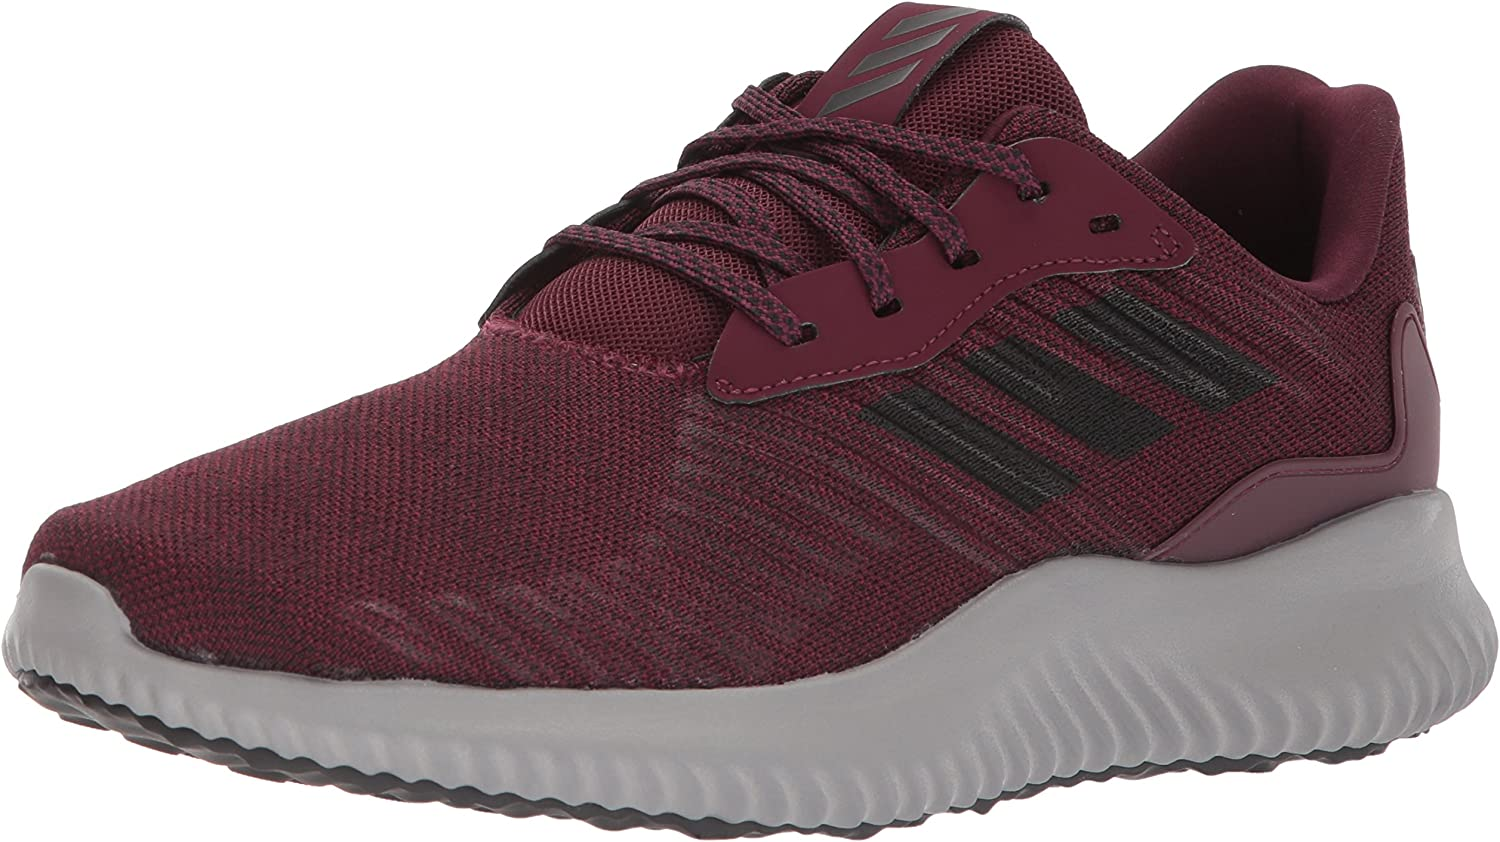 Adidas Men's Alphabounce RC Running shoes